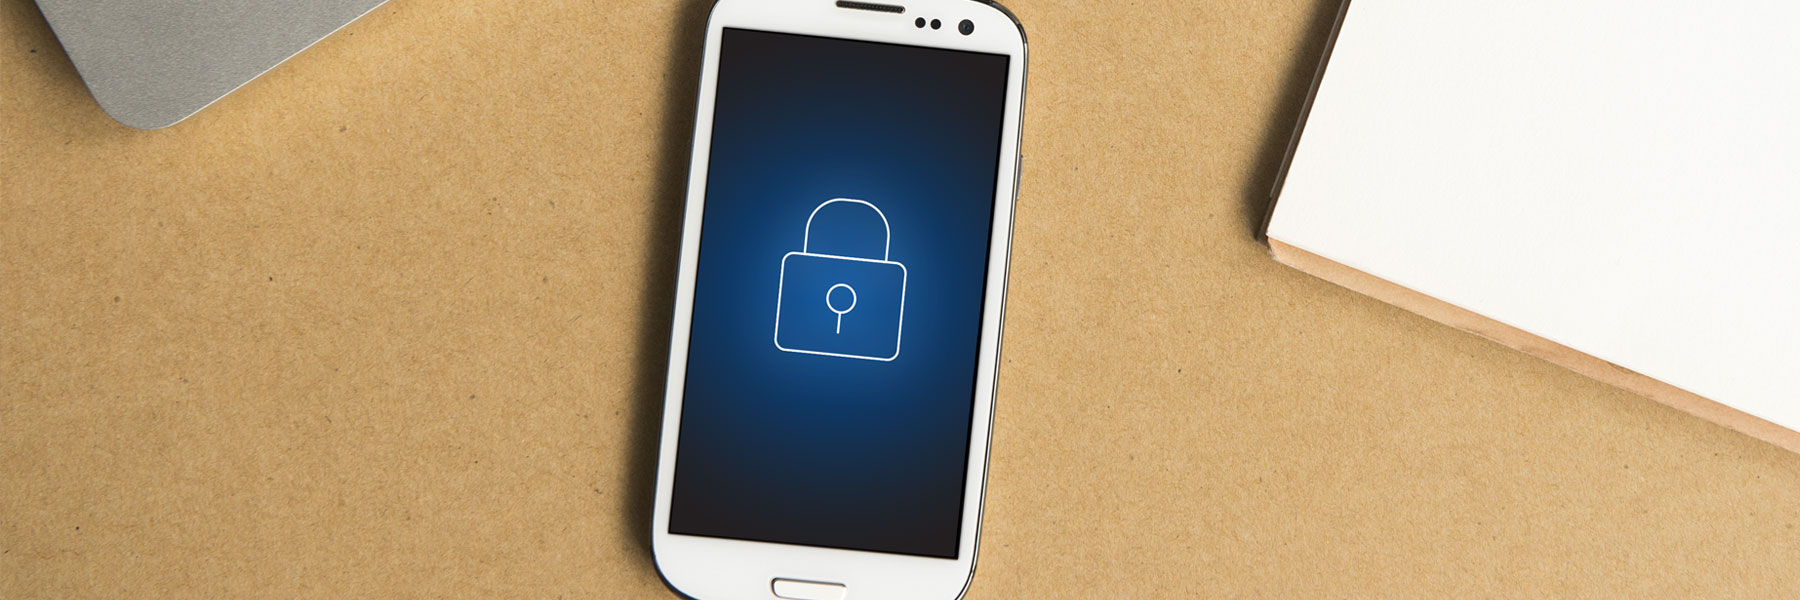 Infosec Guide: Dealing with Threats to a Bring Your Own Device (BYOD